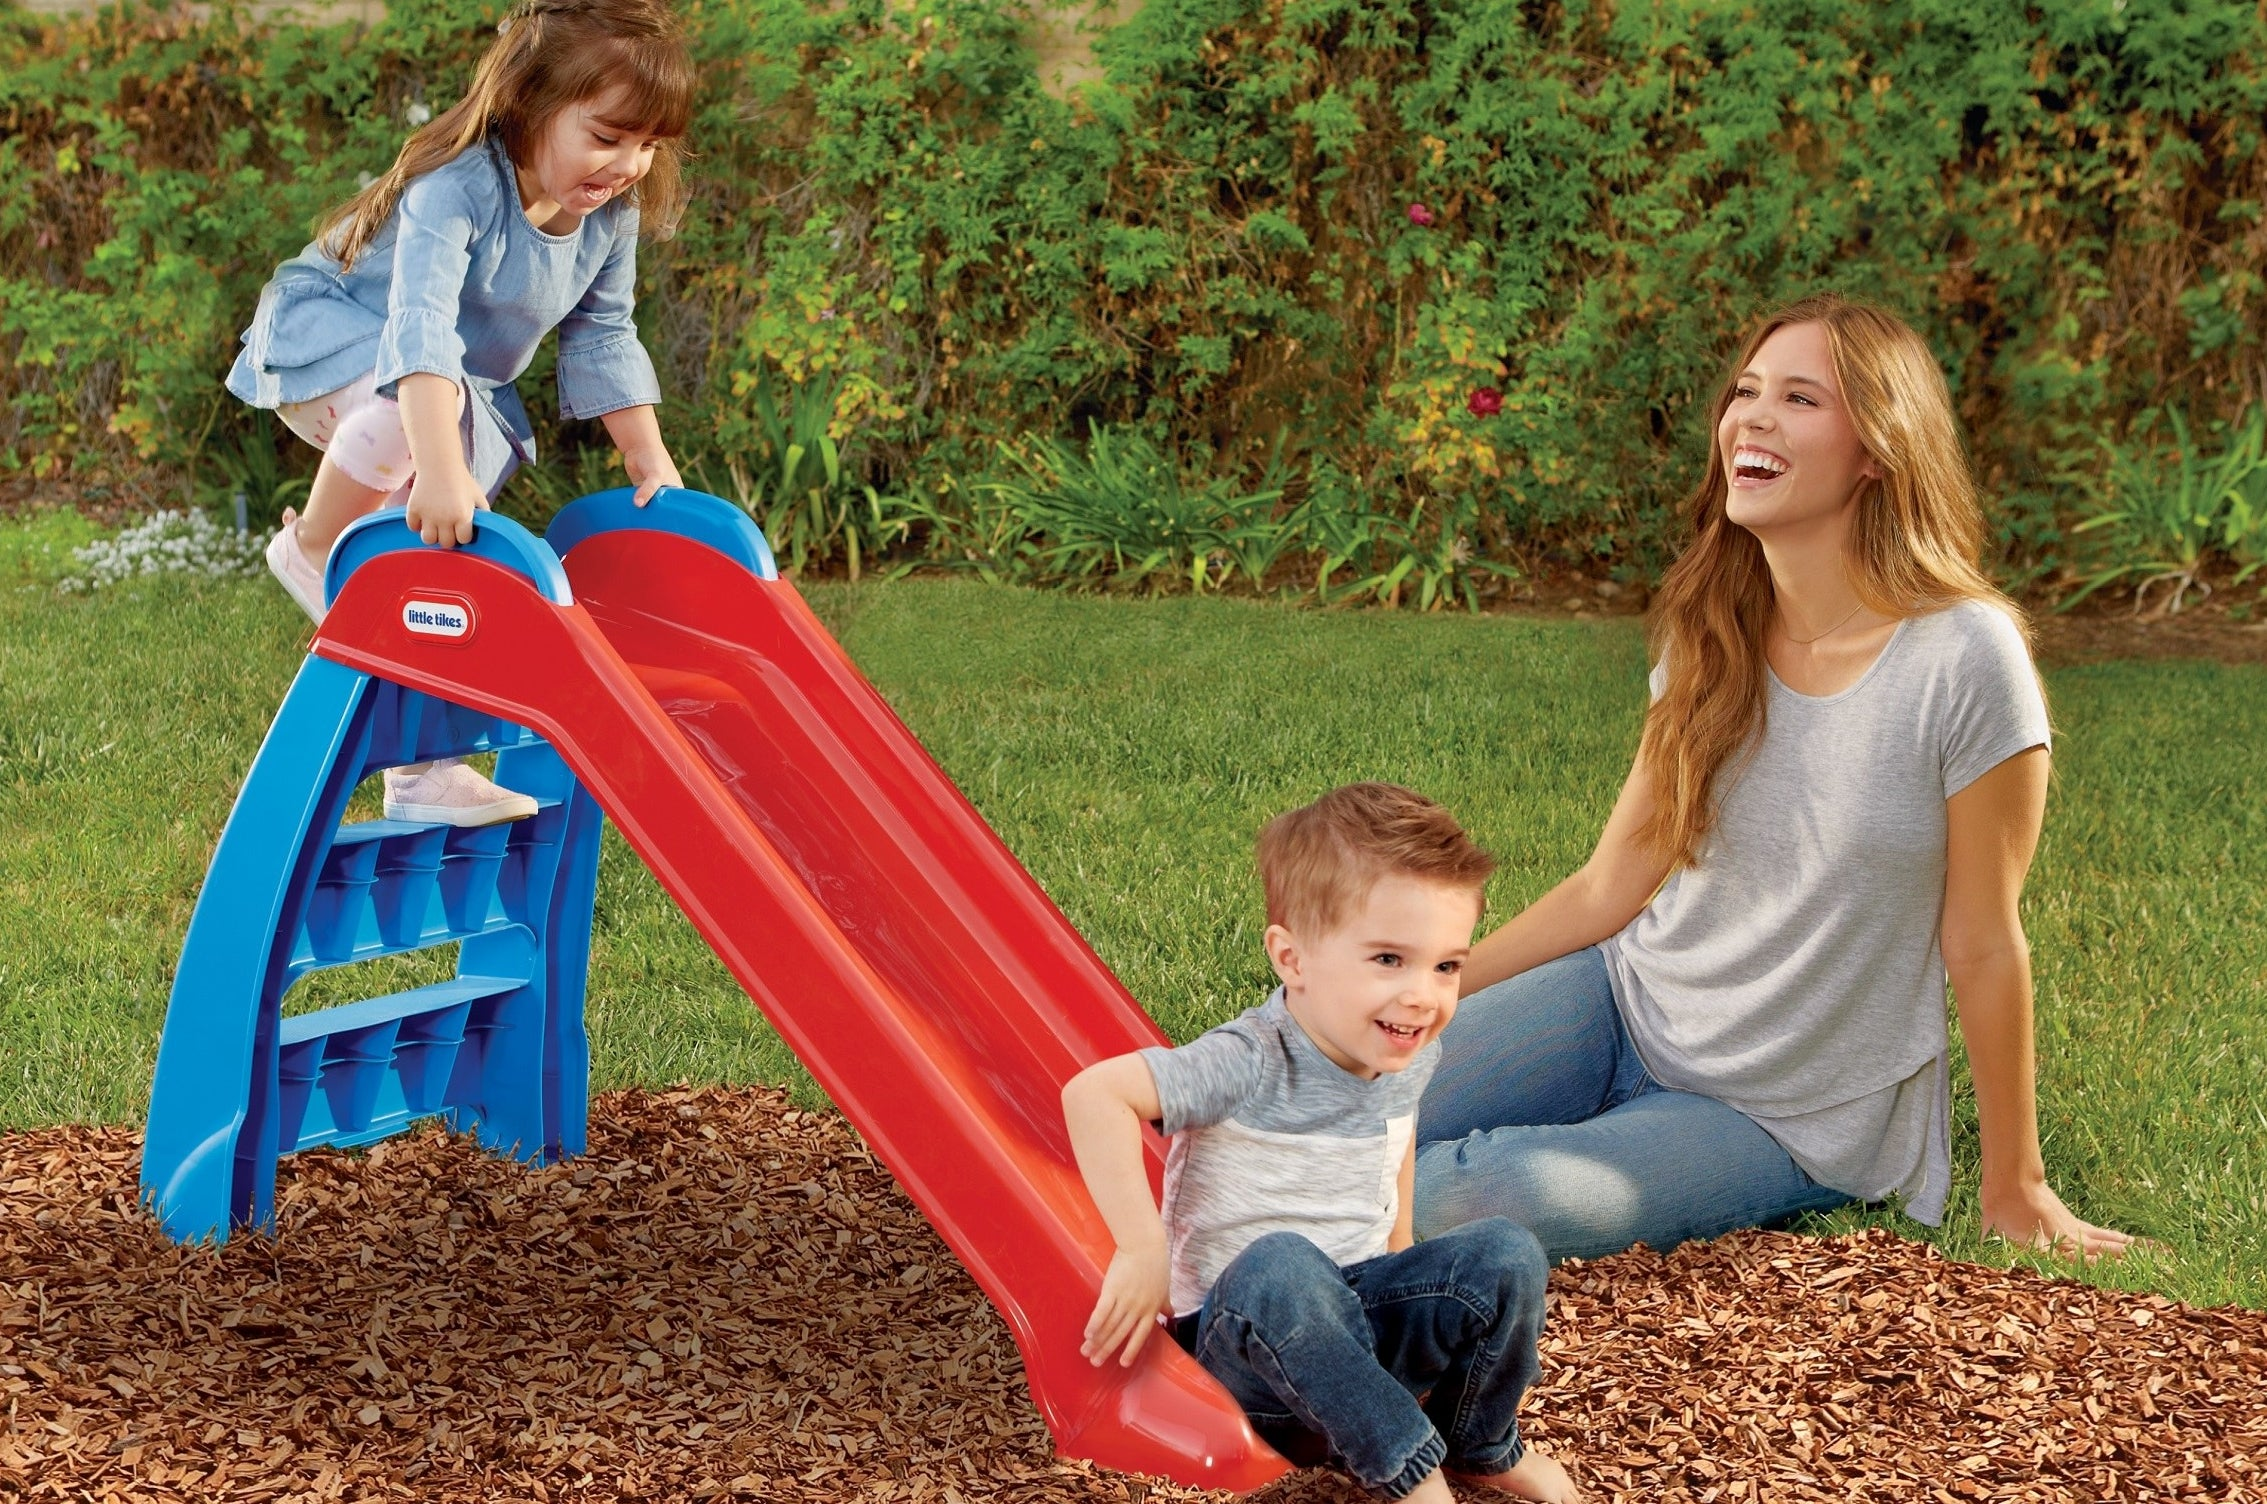 Plastic blue and red slide with easy-to-climb steps